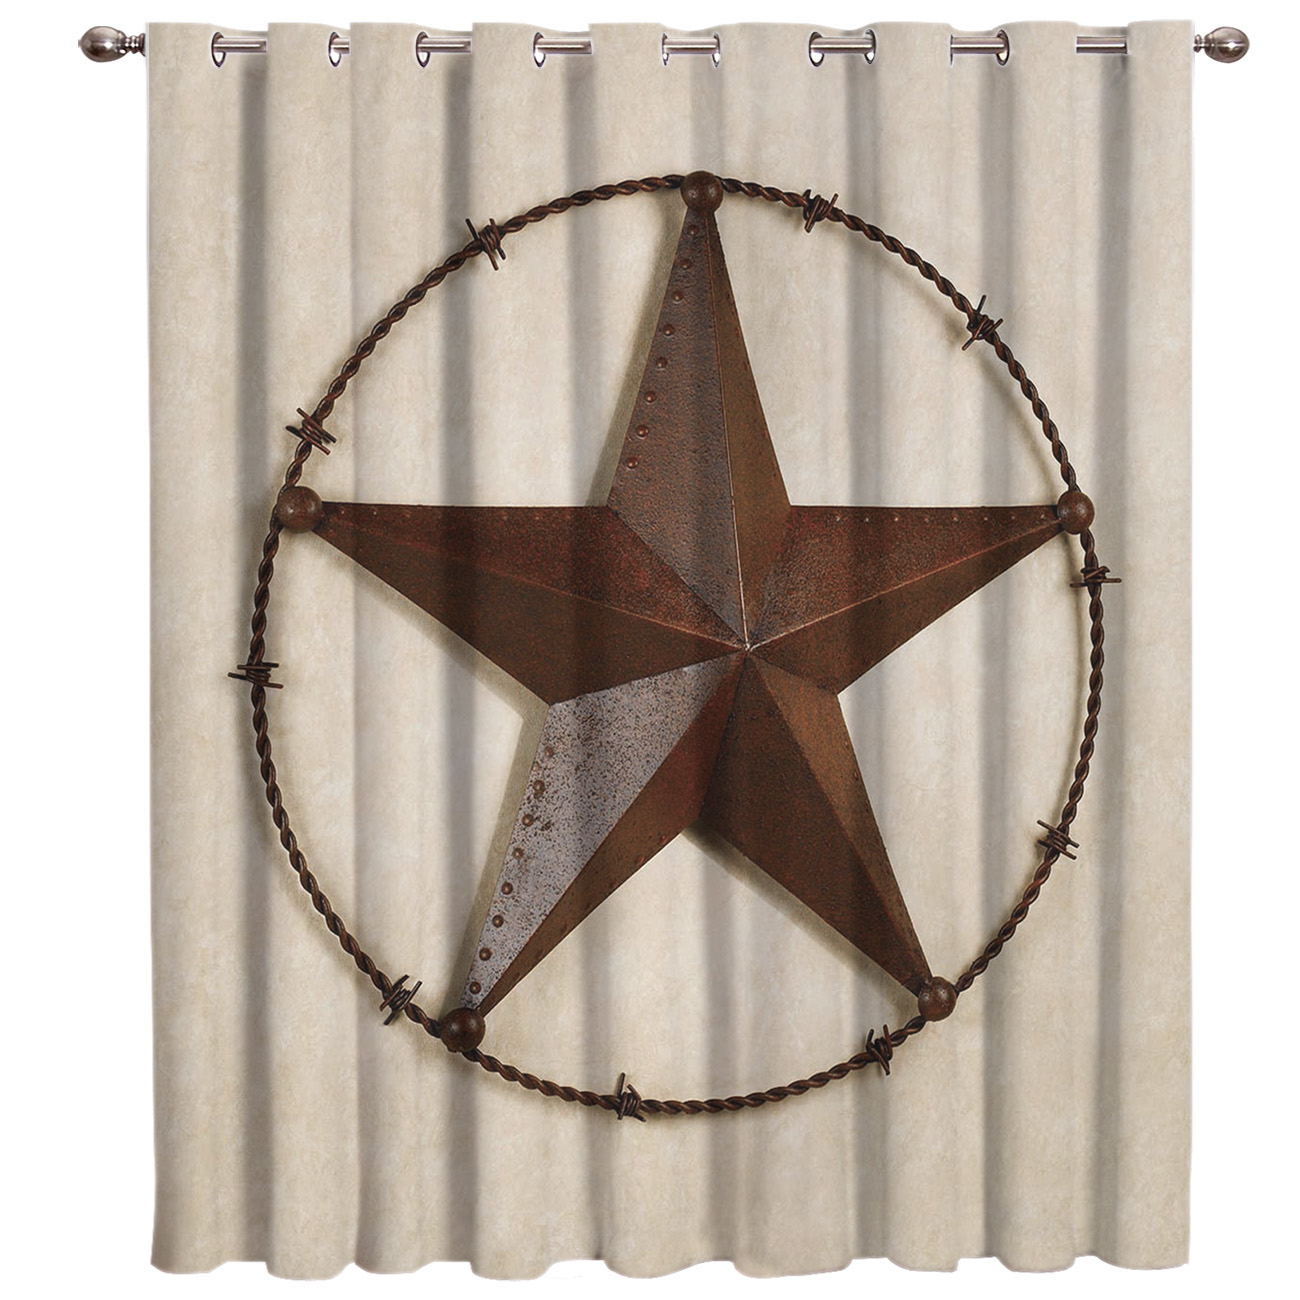 Texas Lone Star Country West Window Treatments Curtains Valance Window Blinds Living Room Decor Bathroom Curtains Outdoor